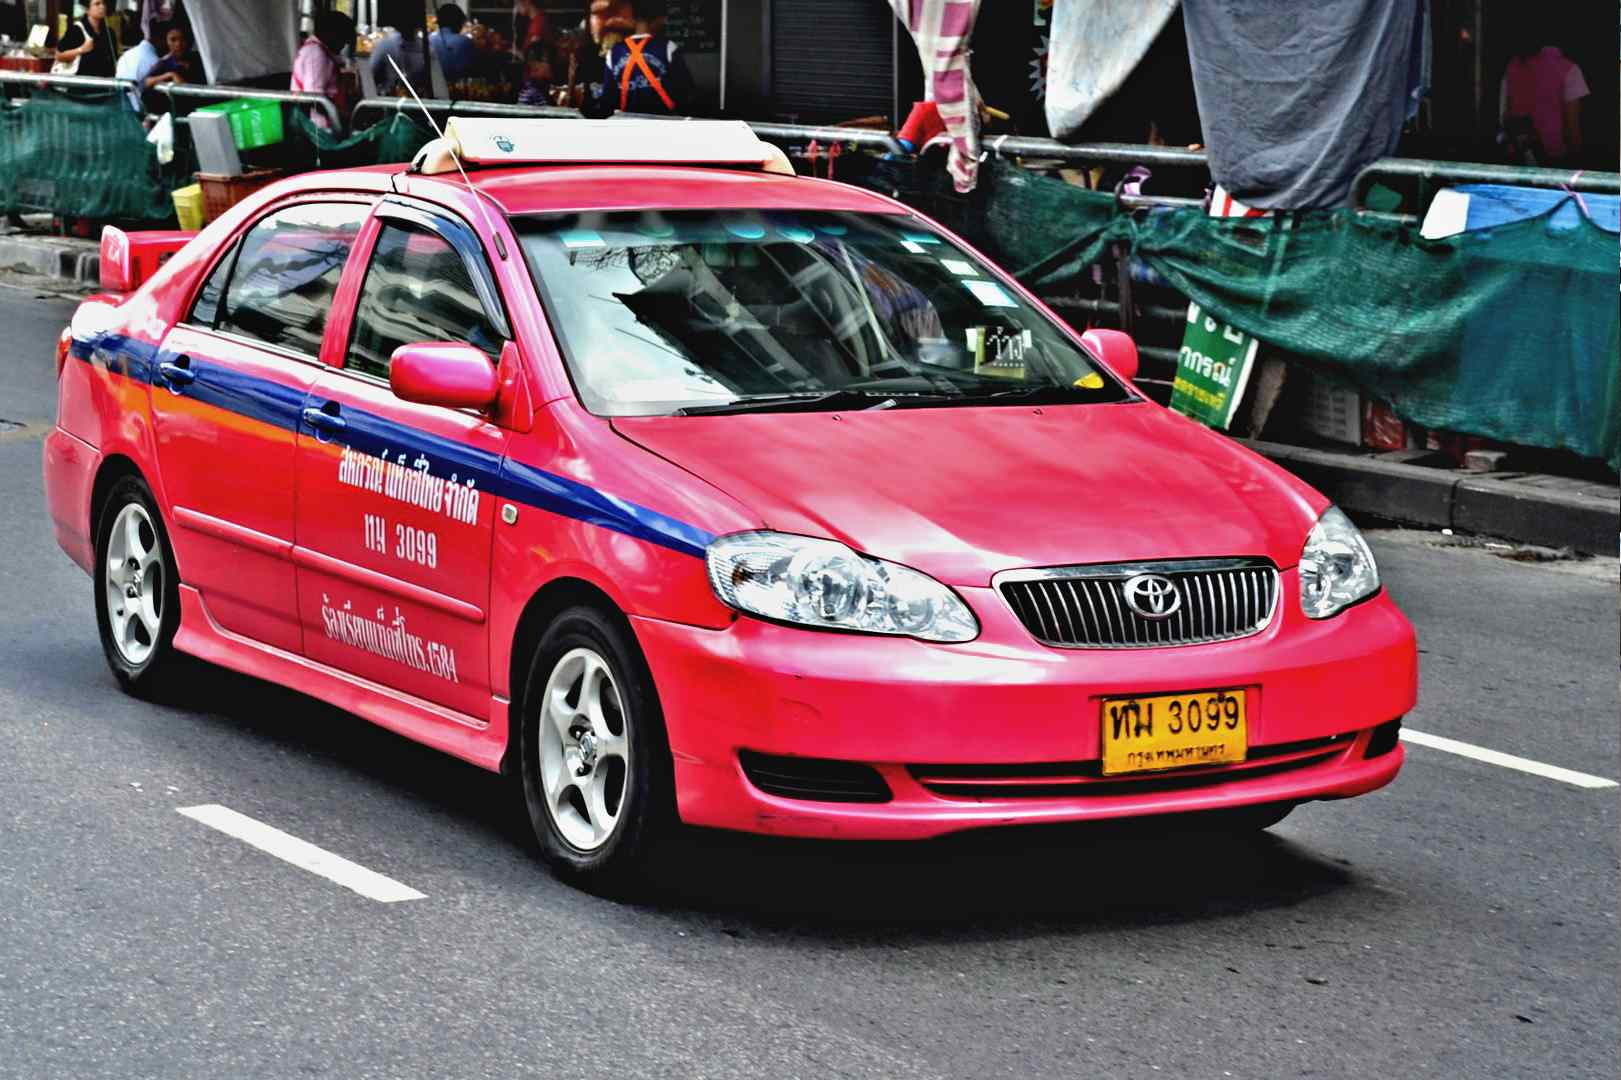 Pink / Red taxi in Bangkok